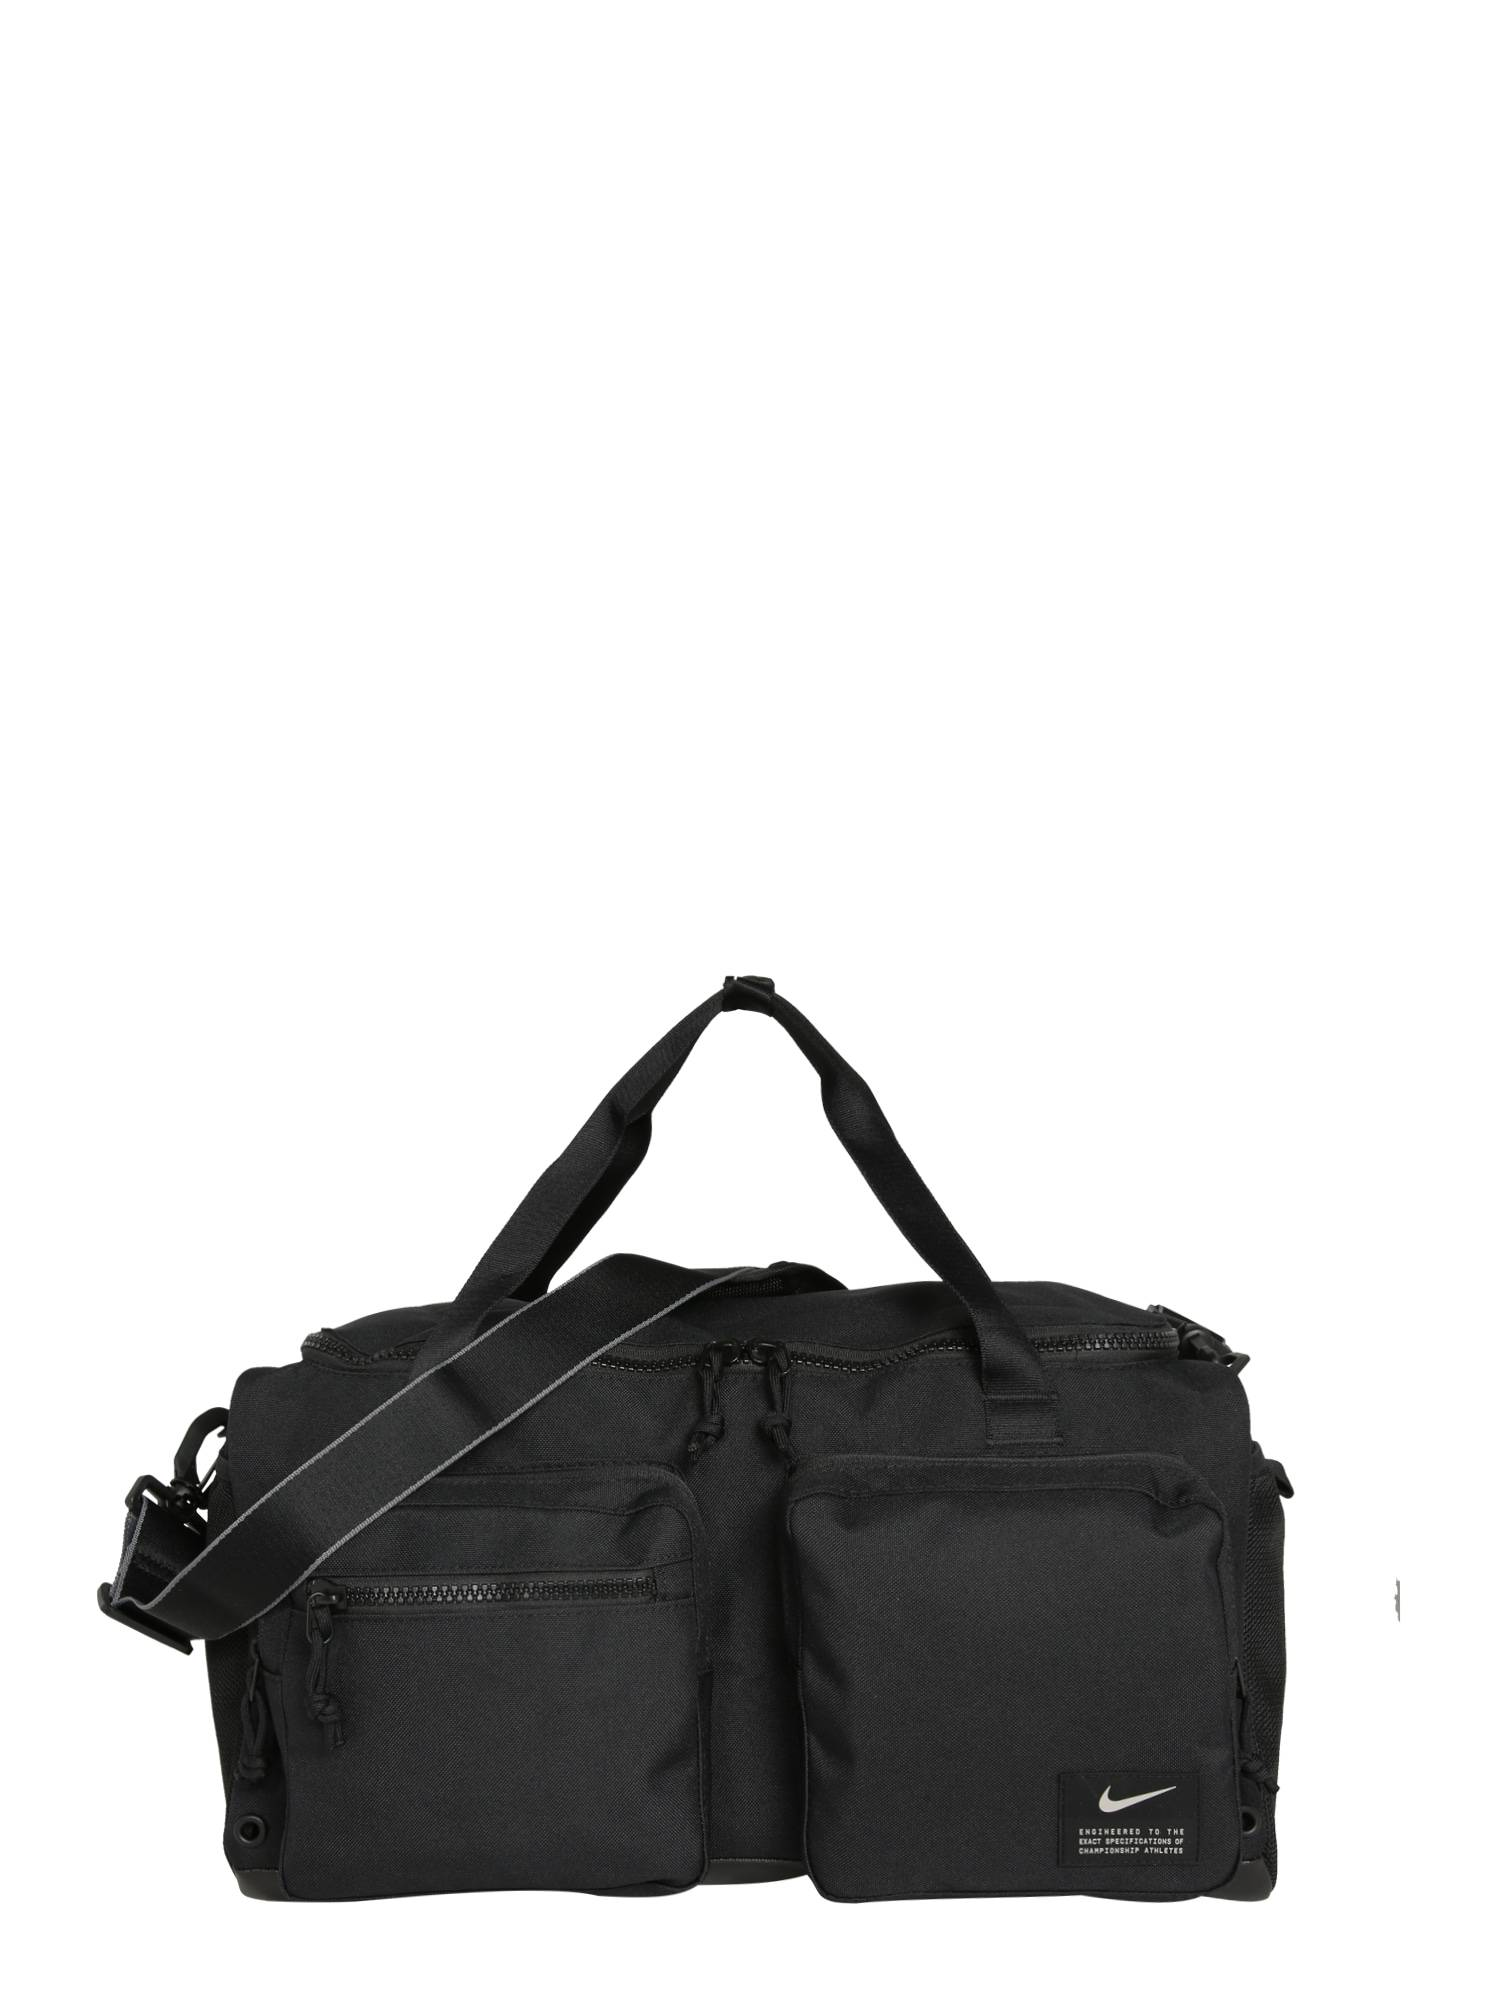 NIKE Sac de sport 'Utility Power'  - Noir - Taille: Taille unique - male